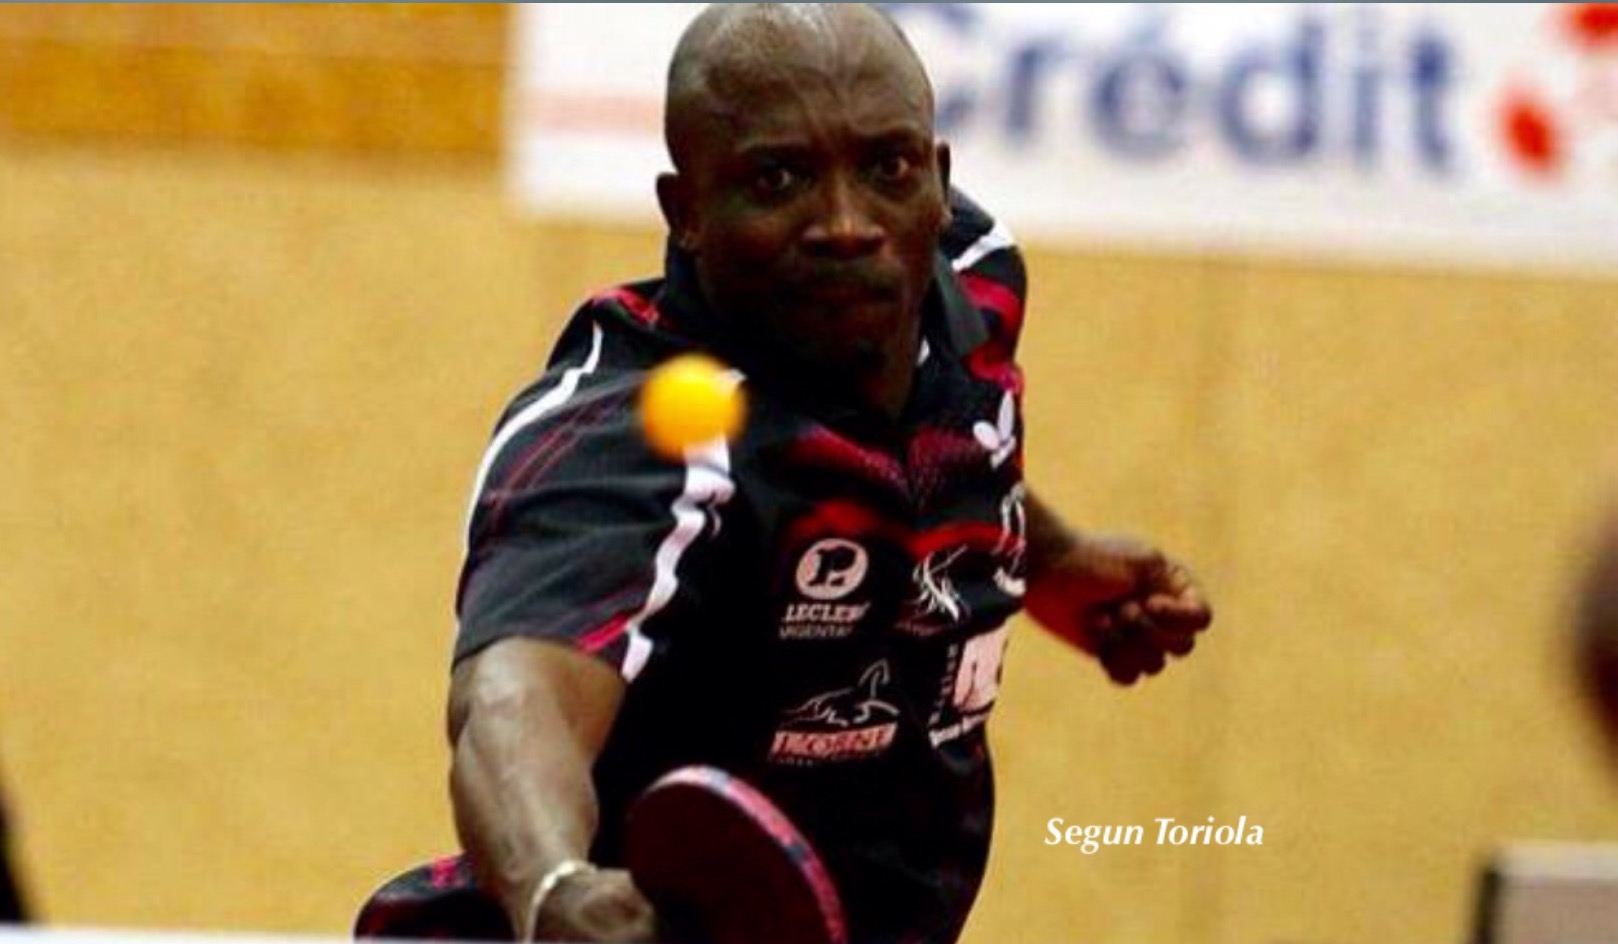 Toriola Insists On Playing At Tokyo 2020 Olympics